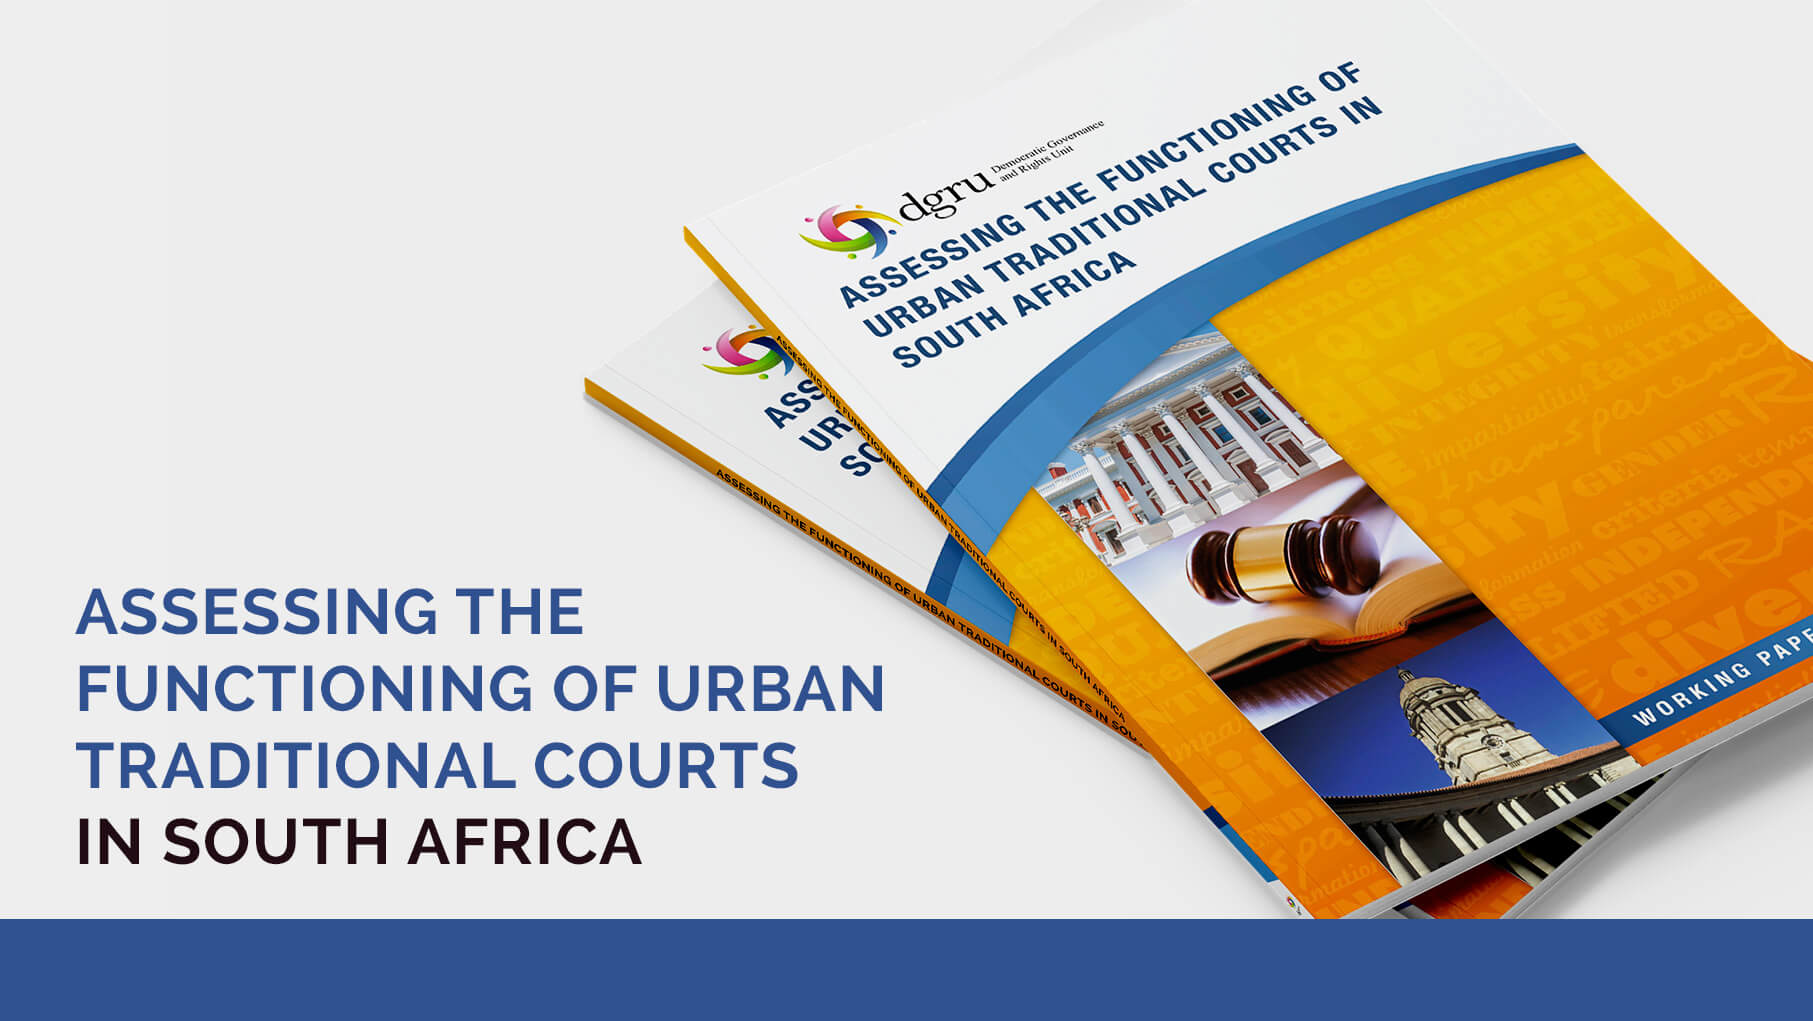 Urban Traditional Courts in South Africa